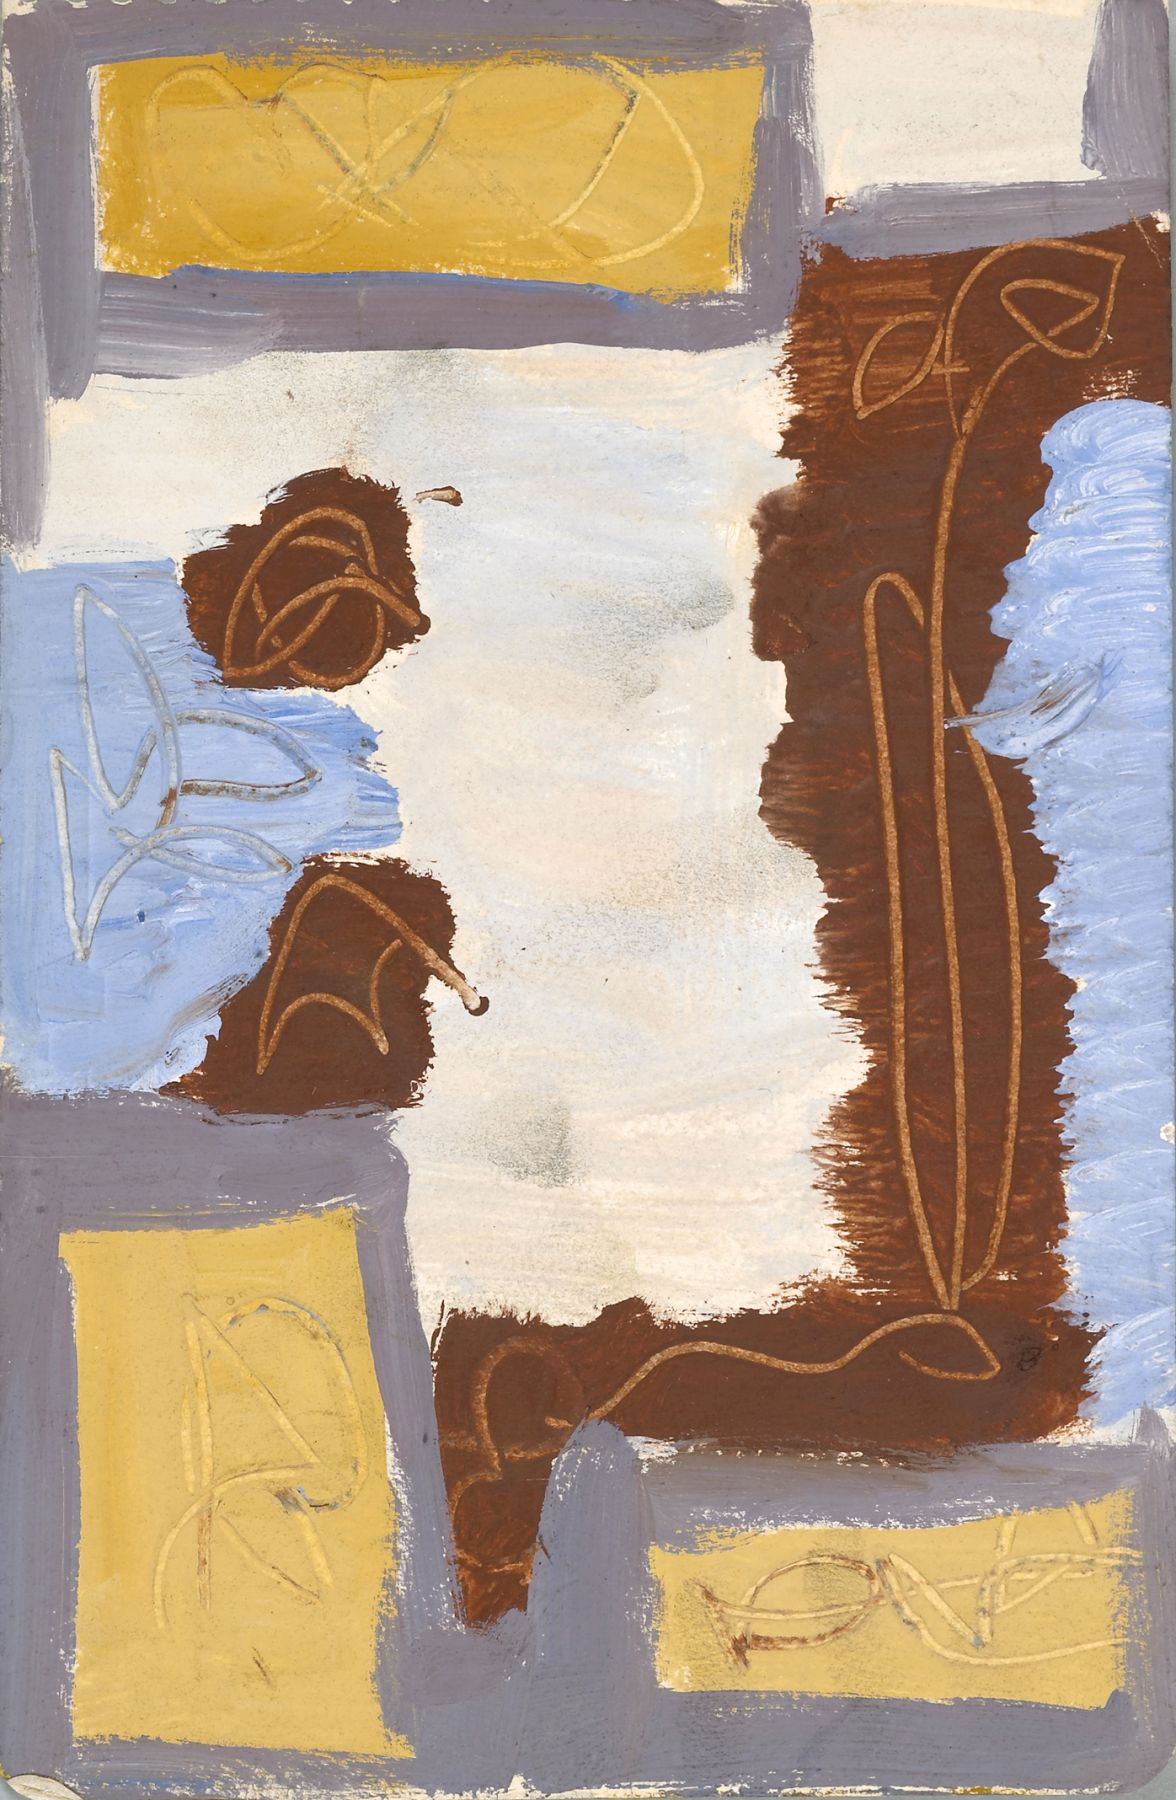 Betty Parsons, Untitled, 1953